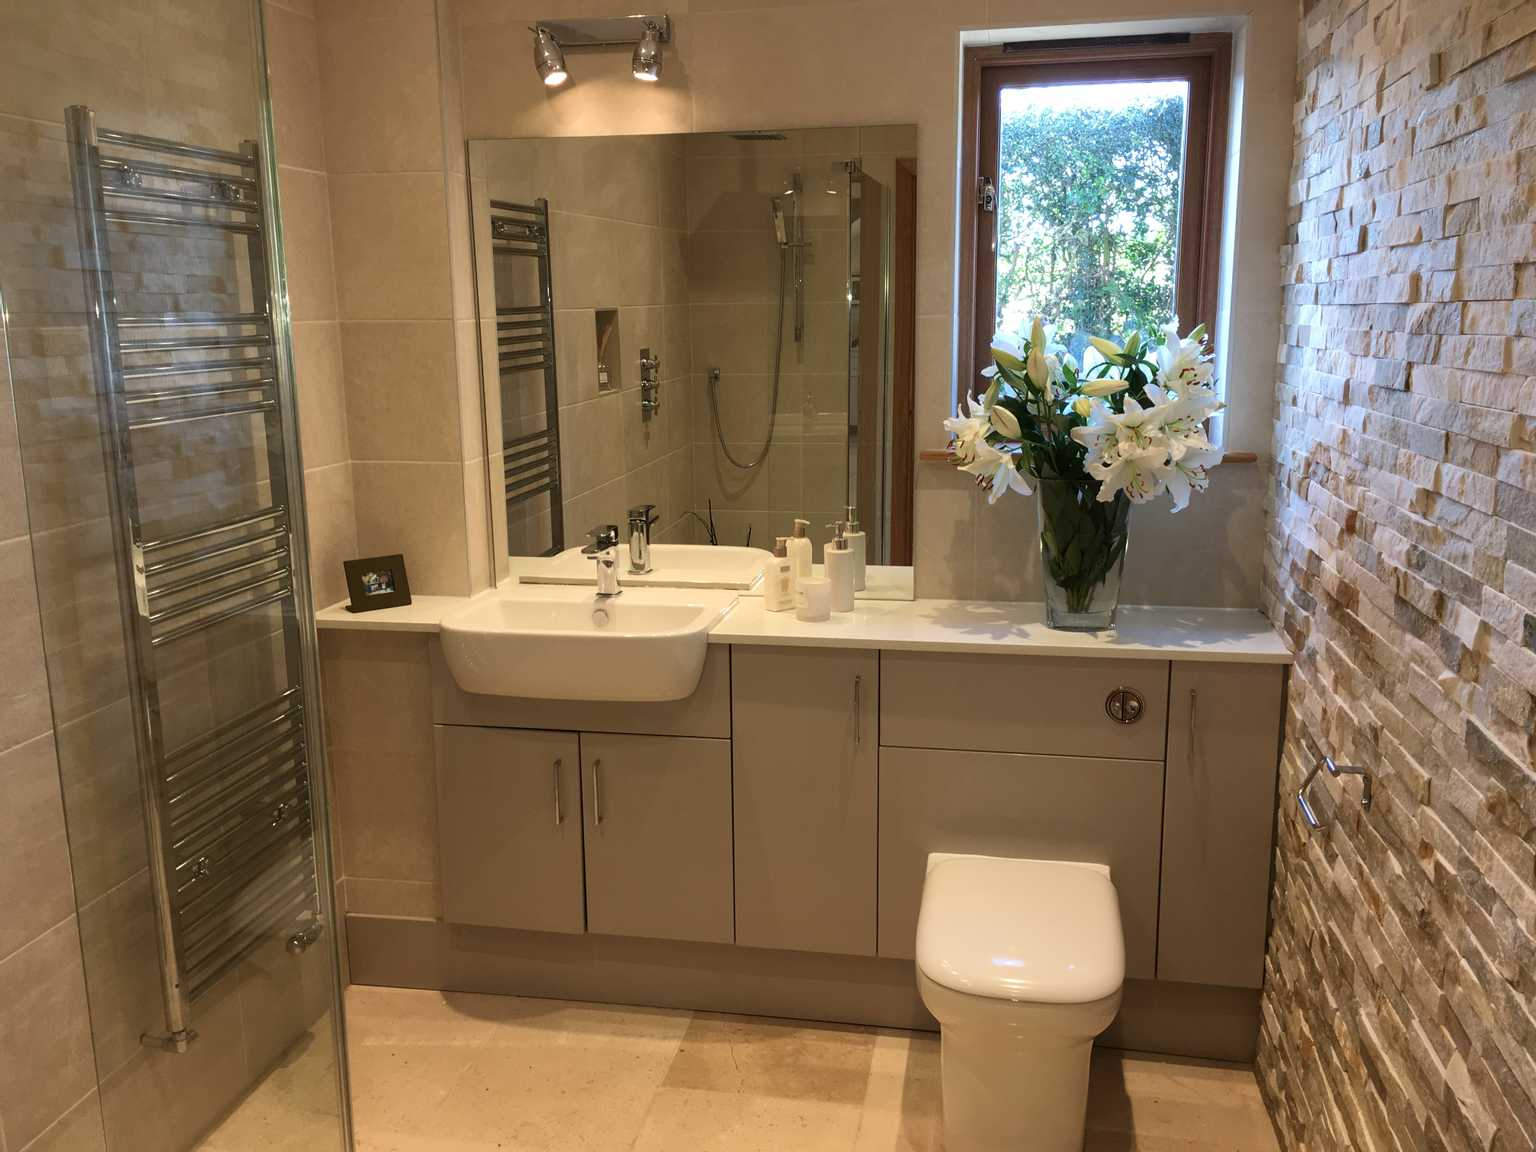 Bathroom Image with split face beige and cream tiles